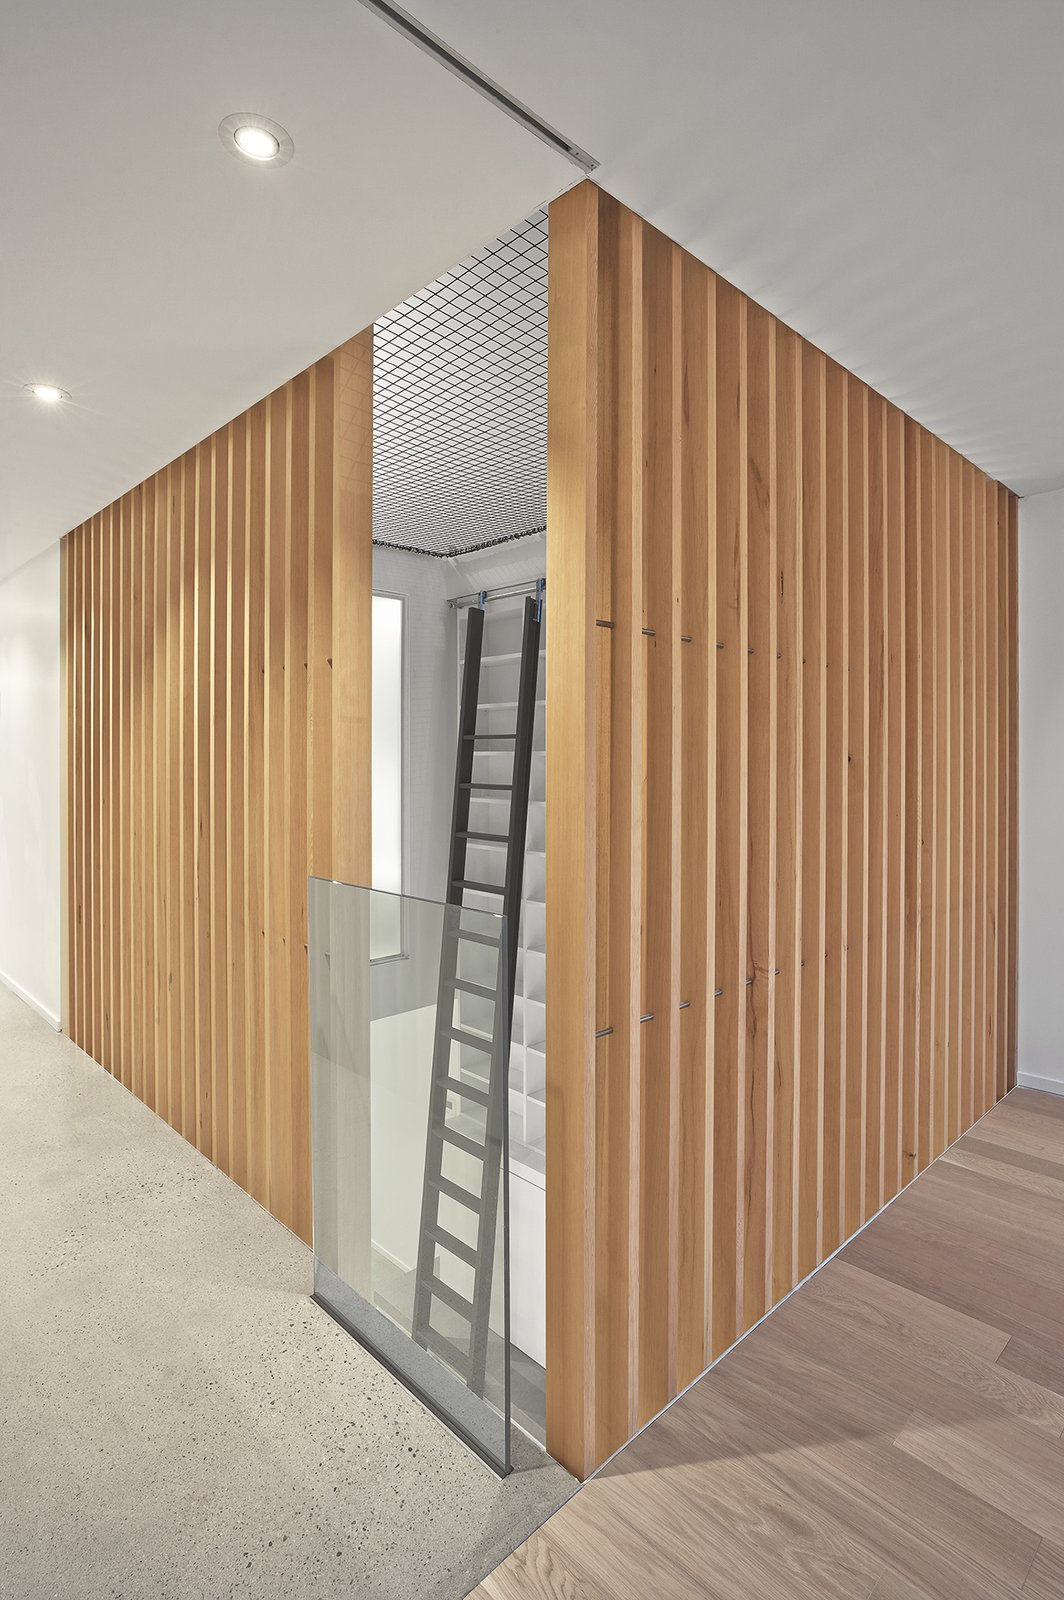 The atrium is 'enclosed' at the second floor level by vertical grain douglas fir slats.  The trapeze net play surface on the third floor can be seen.  Atrium Townhome by RobitailleCurtis